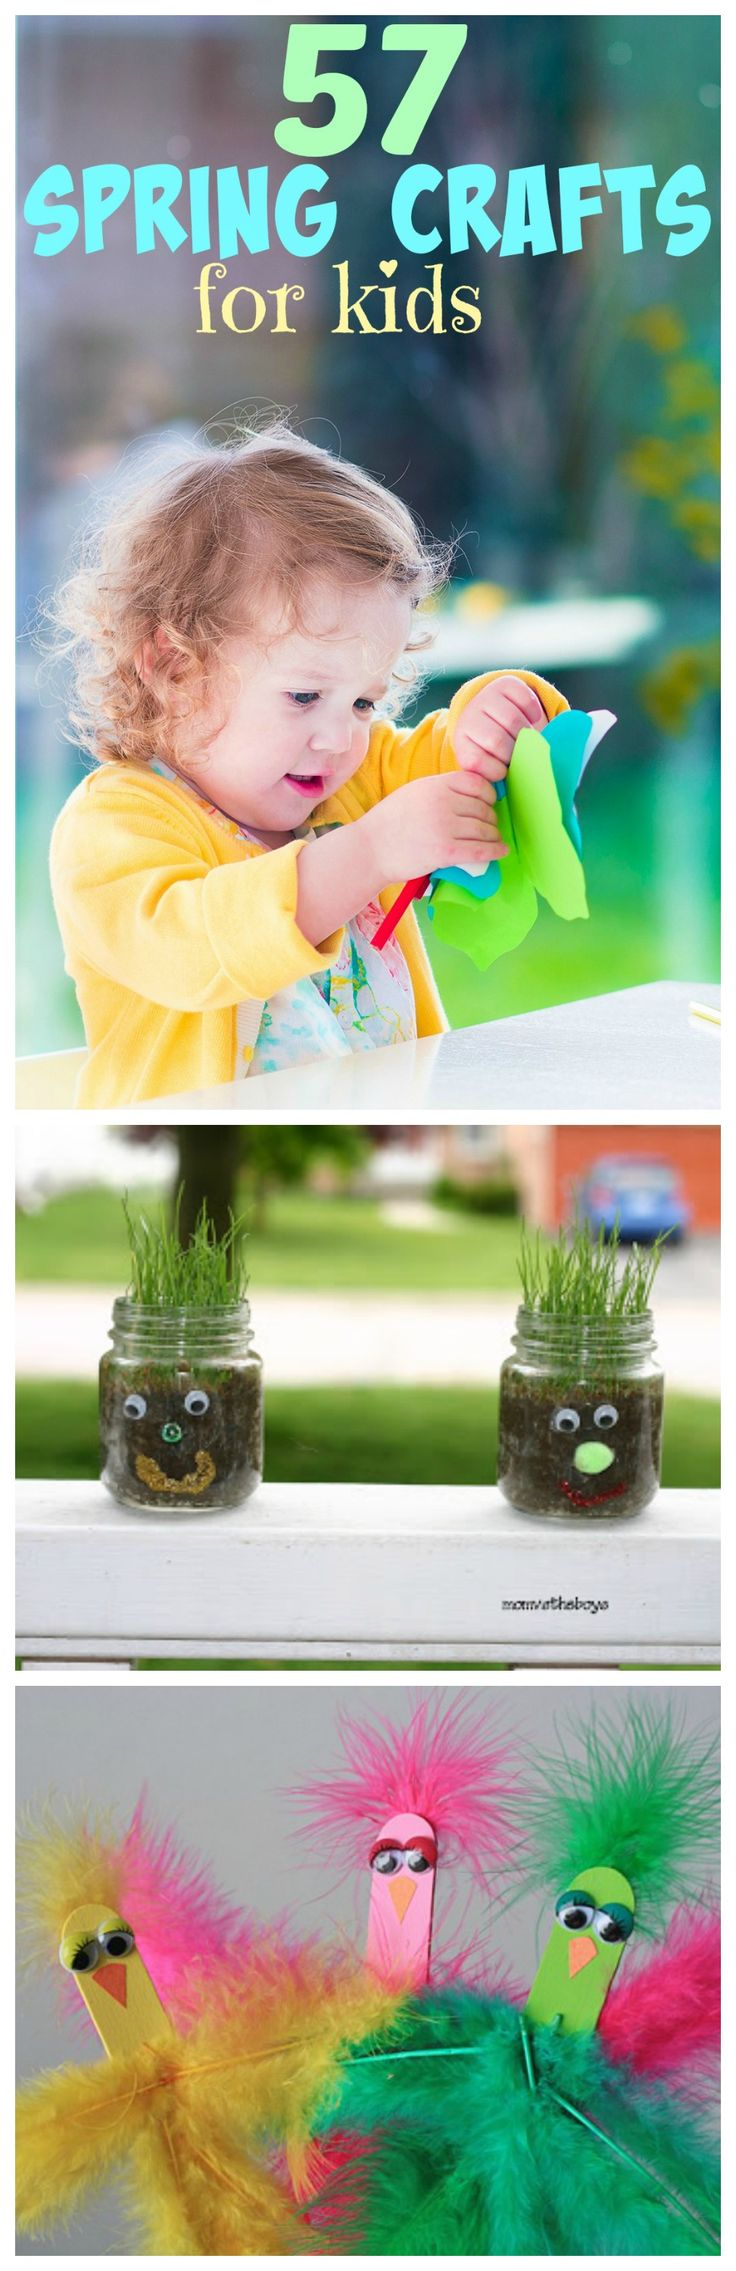 Spring Craft for Kids:  I love this list of Easy Craft Ideas For Kids!  Perfect for fun afternoons!  | Dollar Store Crafts | Spring Craft Ideas | Spring Crafts For Kids | Kids Crafts